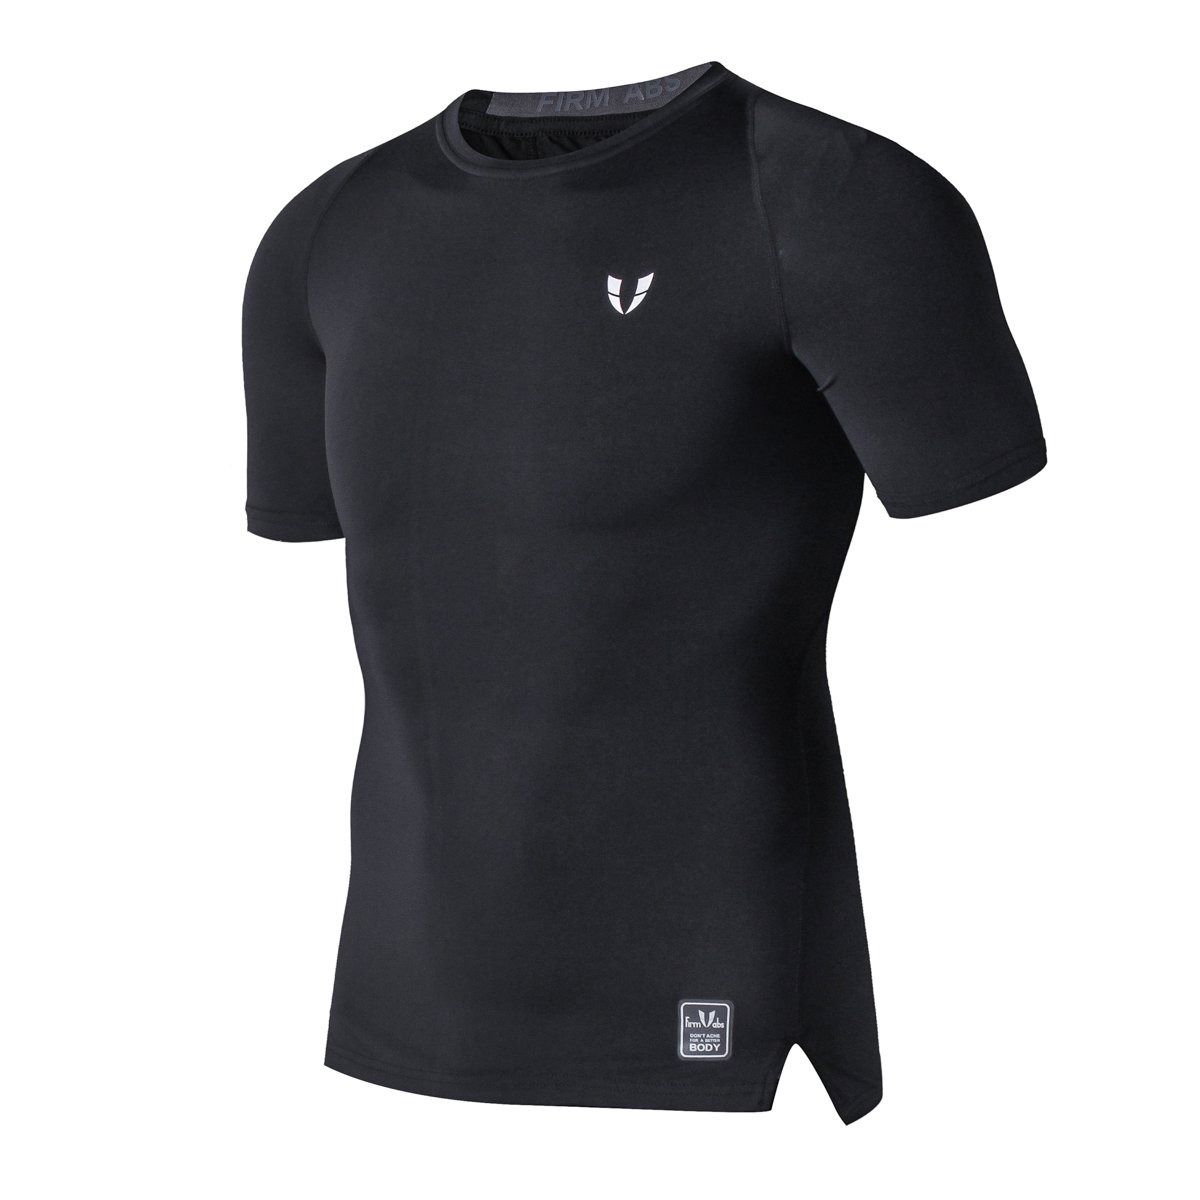 FIRM ABS Men's Short Sleeve Compression Tight T Shirt (M,Black)